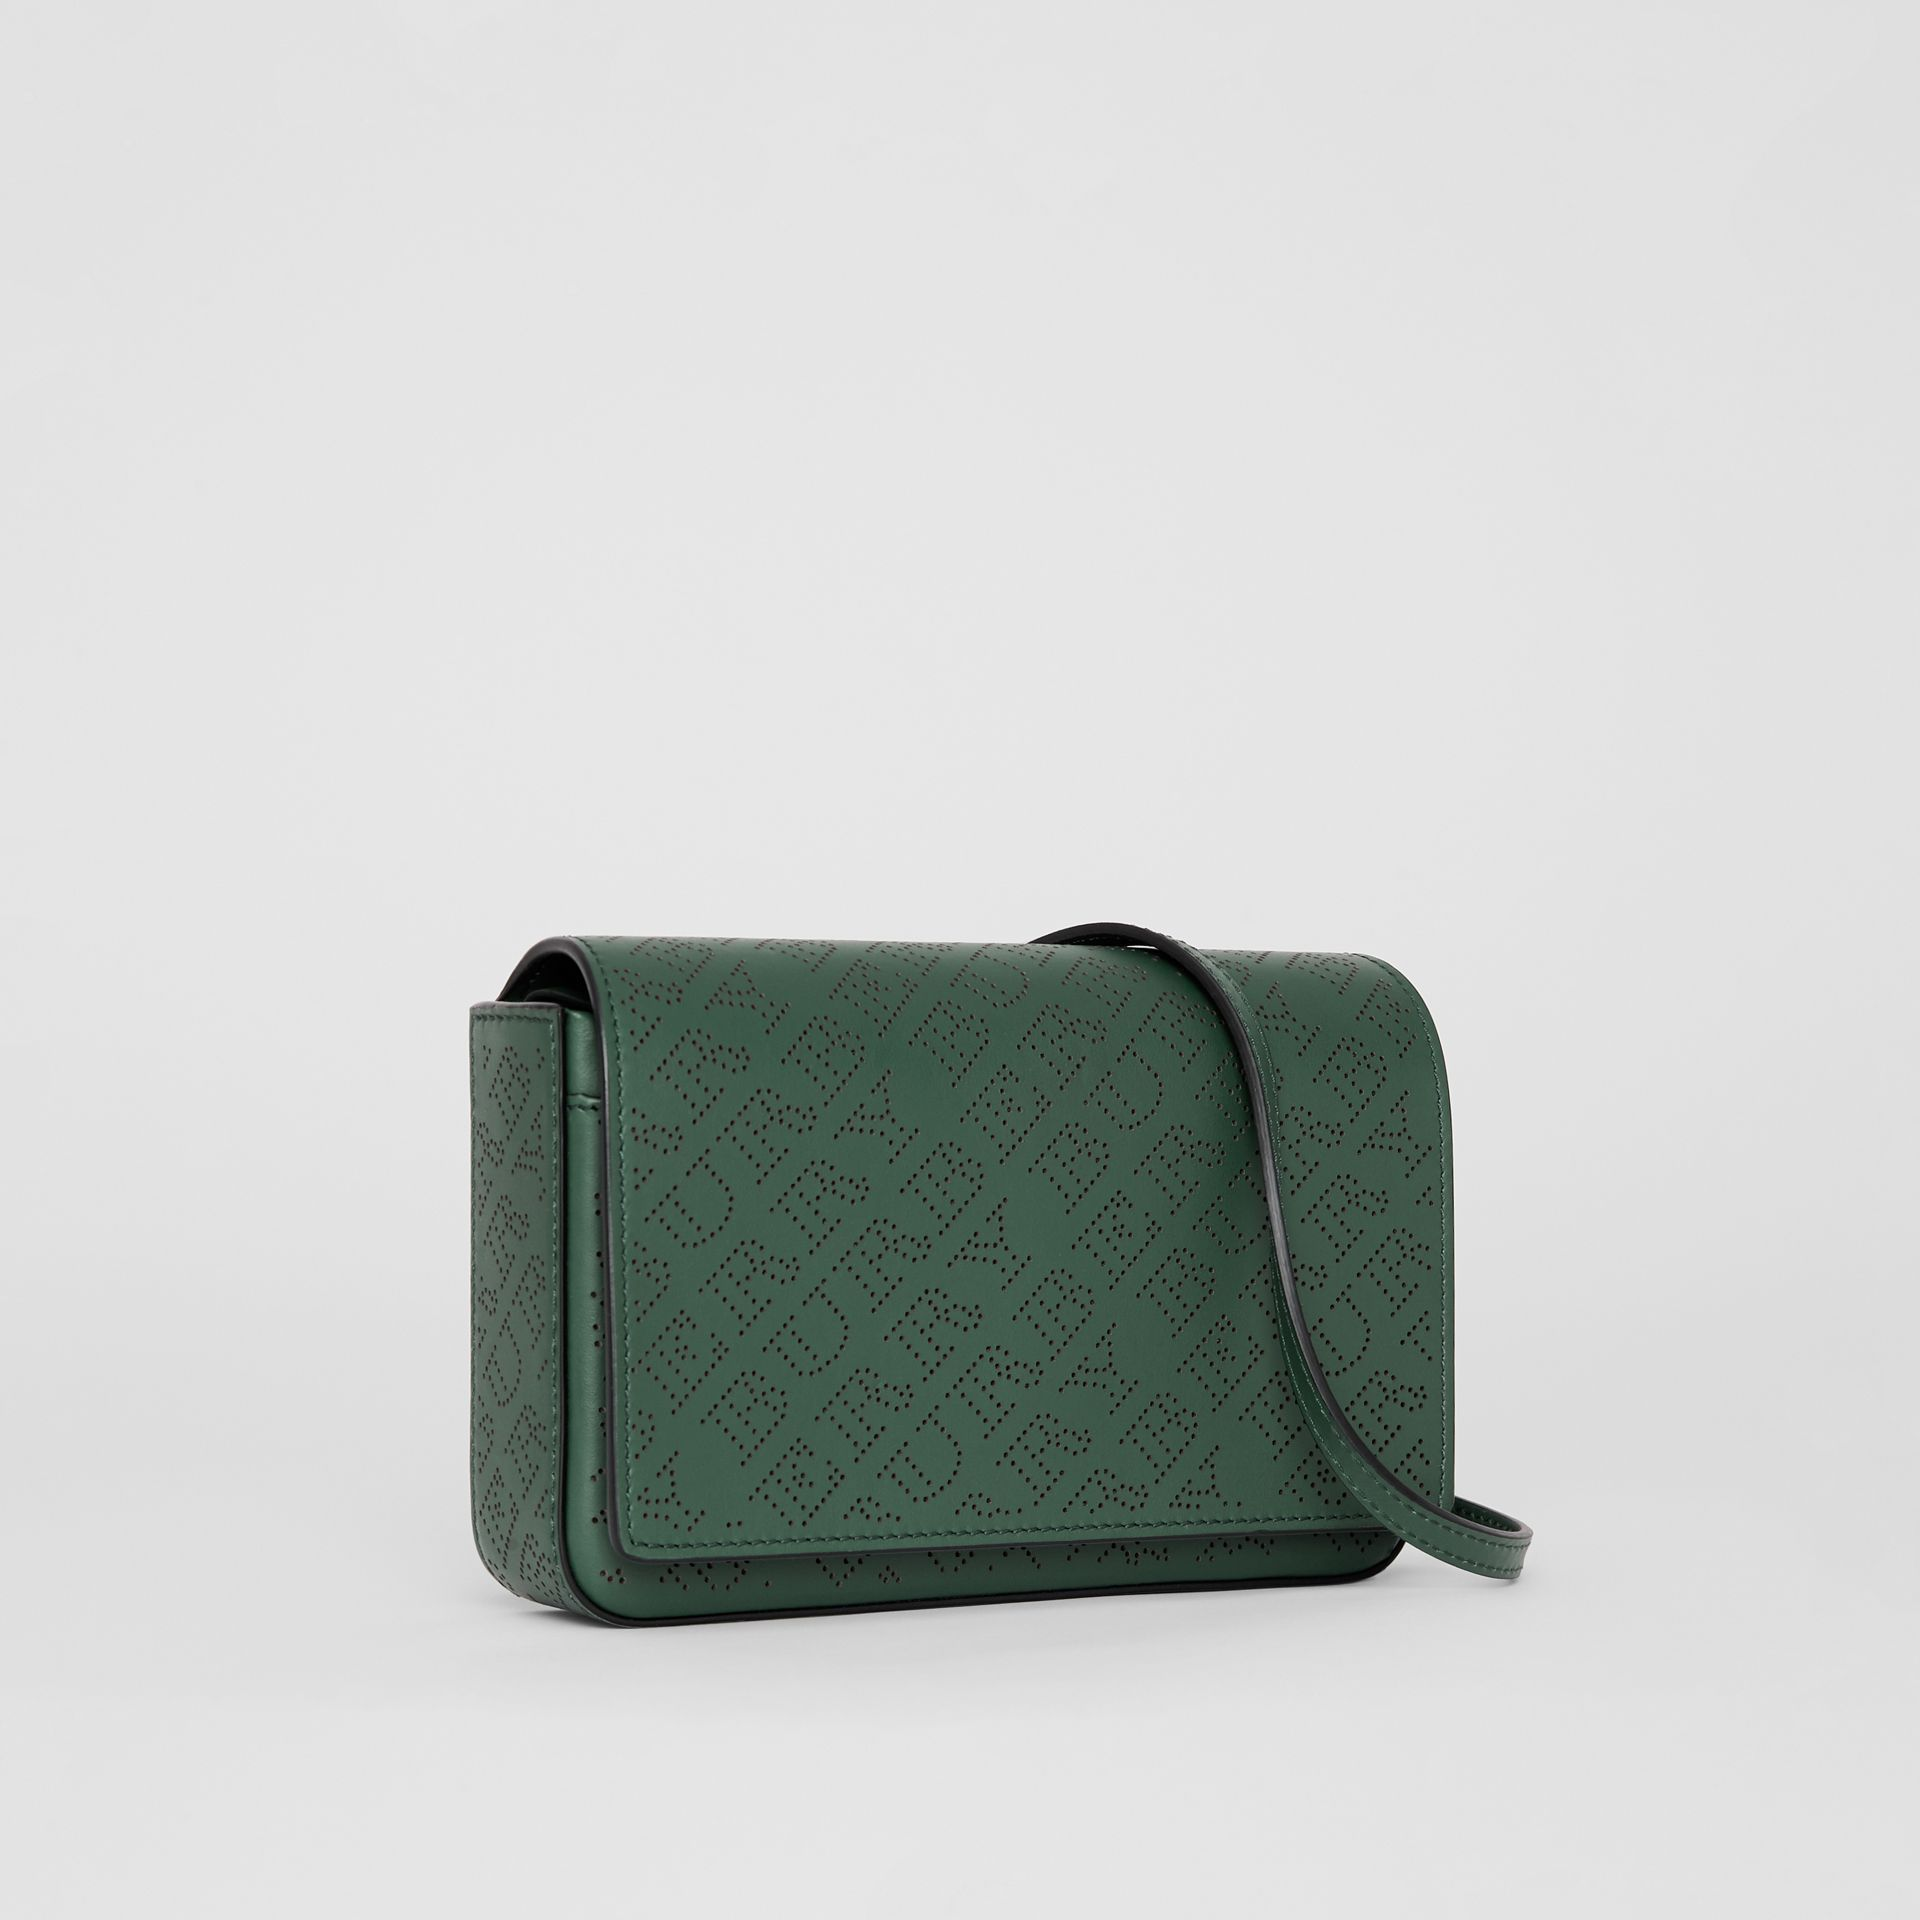 Perforated Logo Leather Wallet with Detachable Strap in Vintage Green - Women | Burberry - gallery image 5